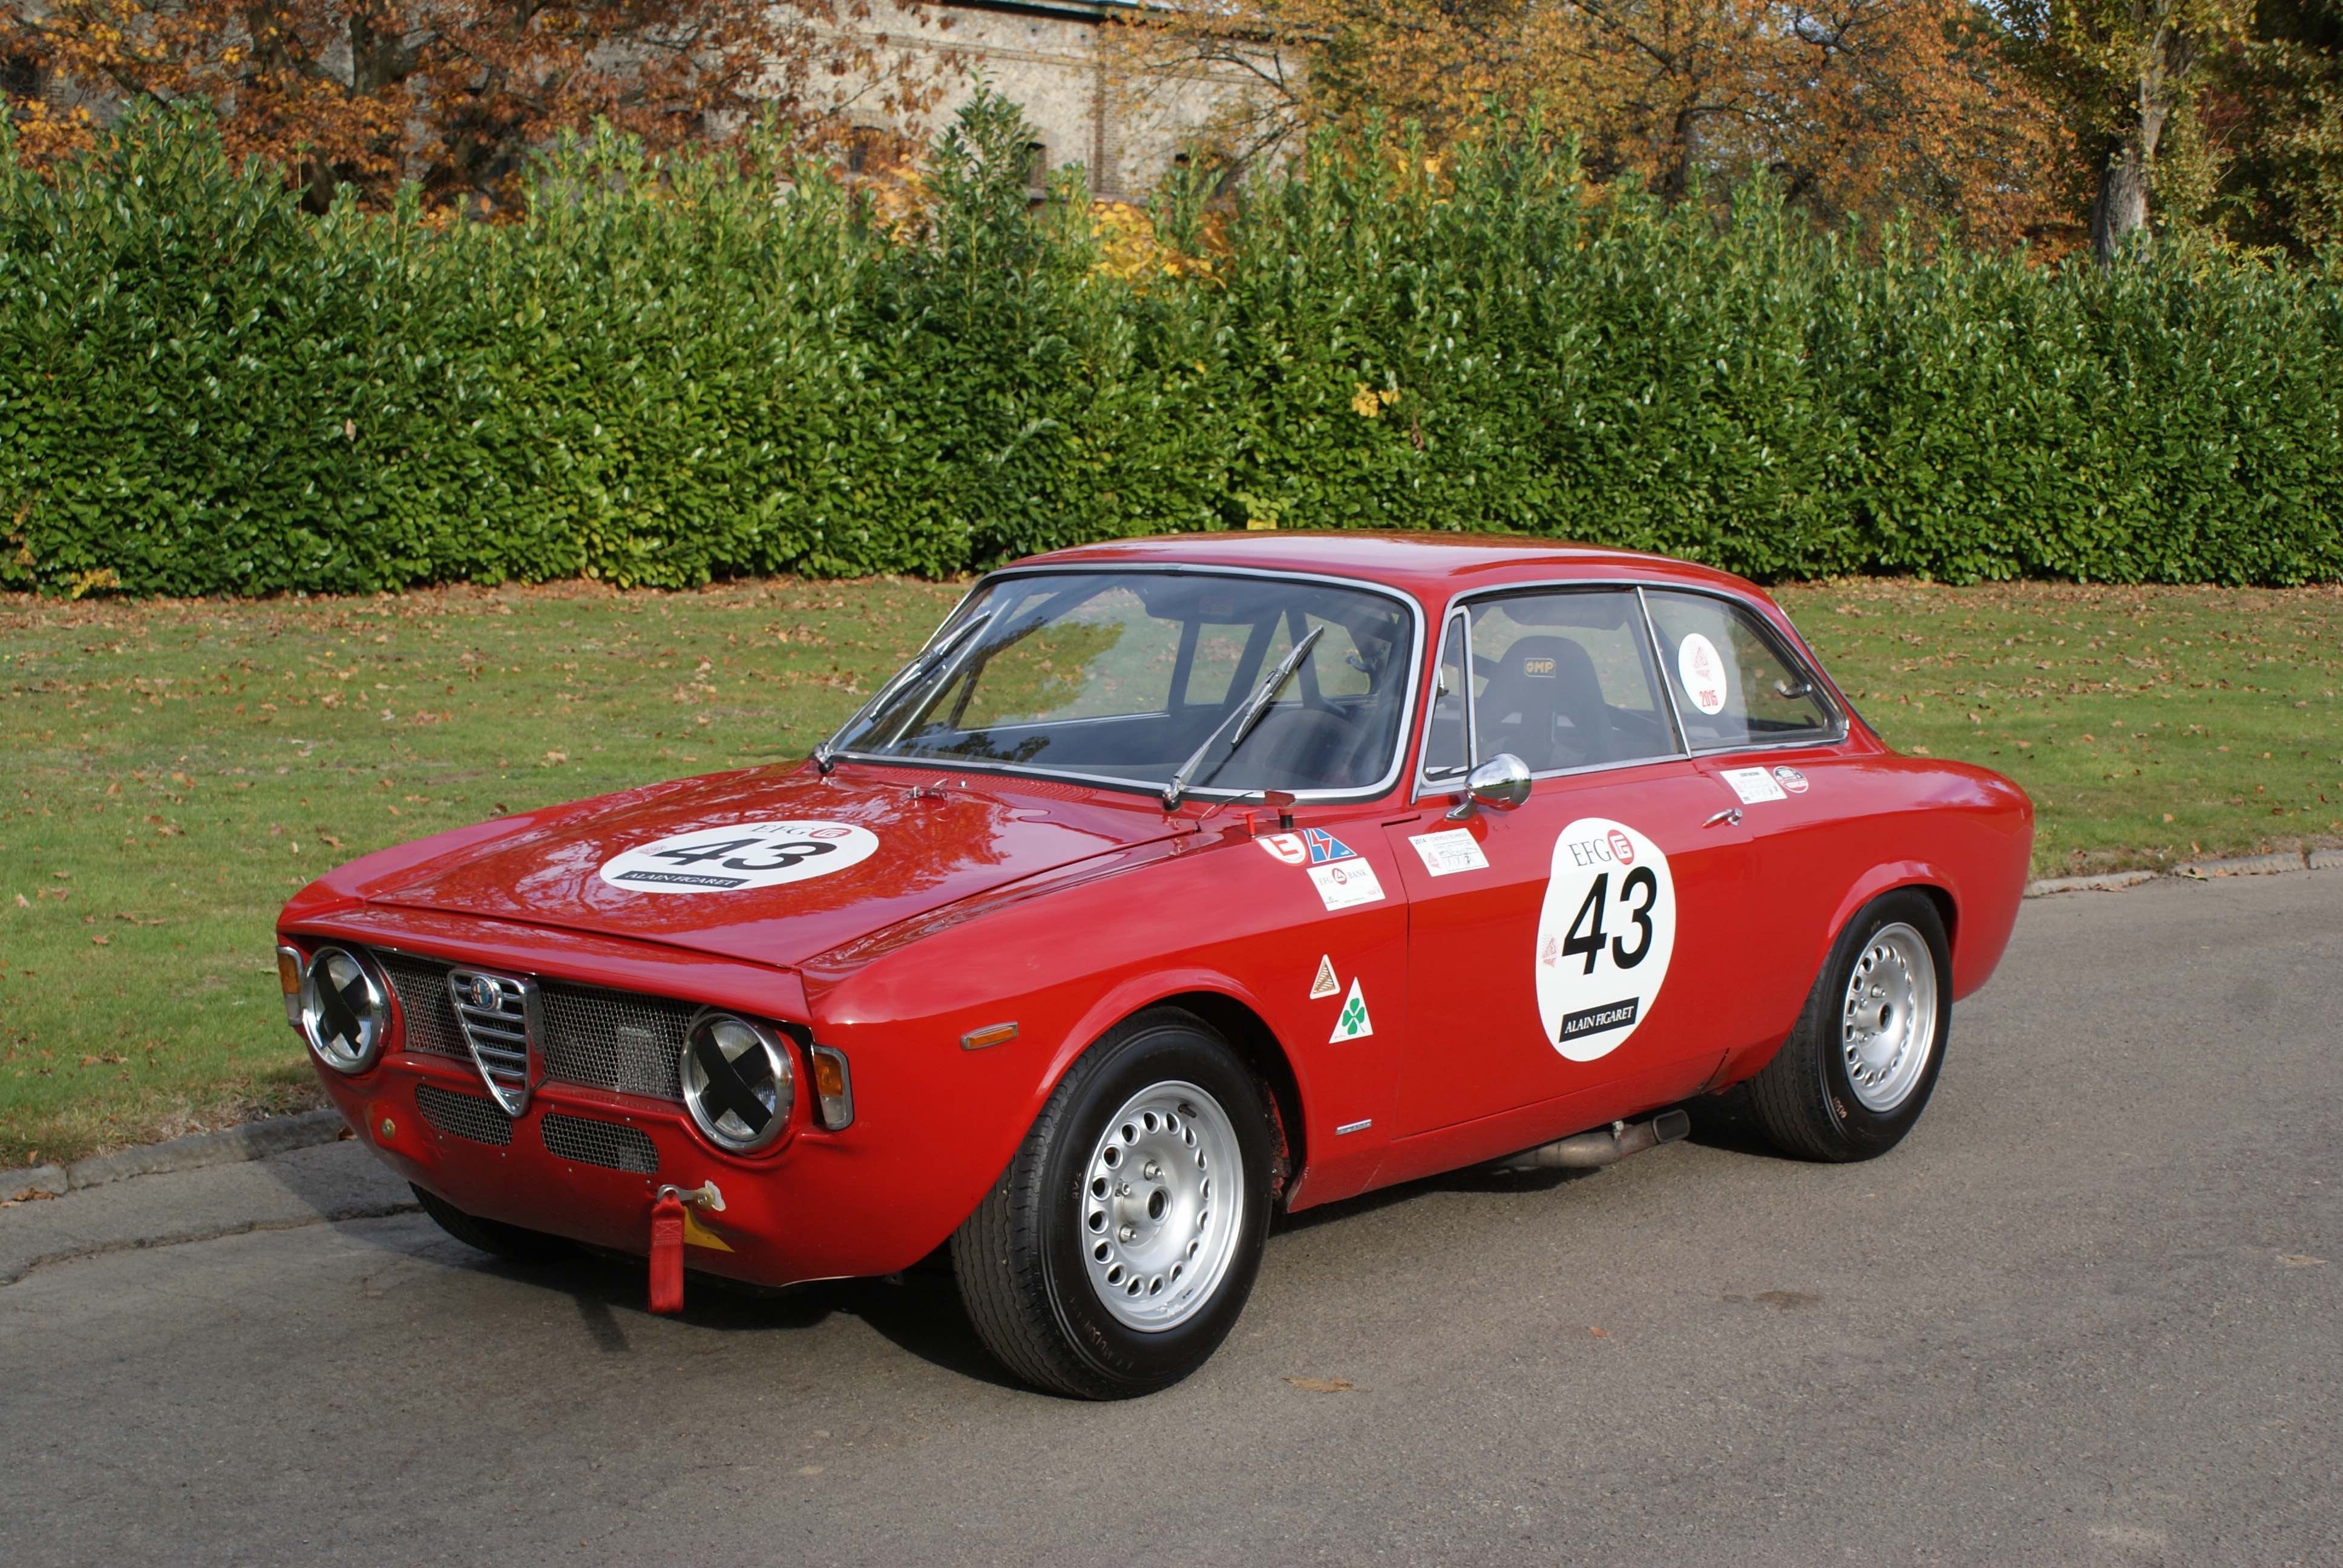 1965 Alfa Romeo GTA Vintage car for sale